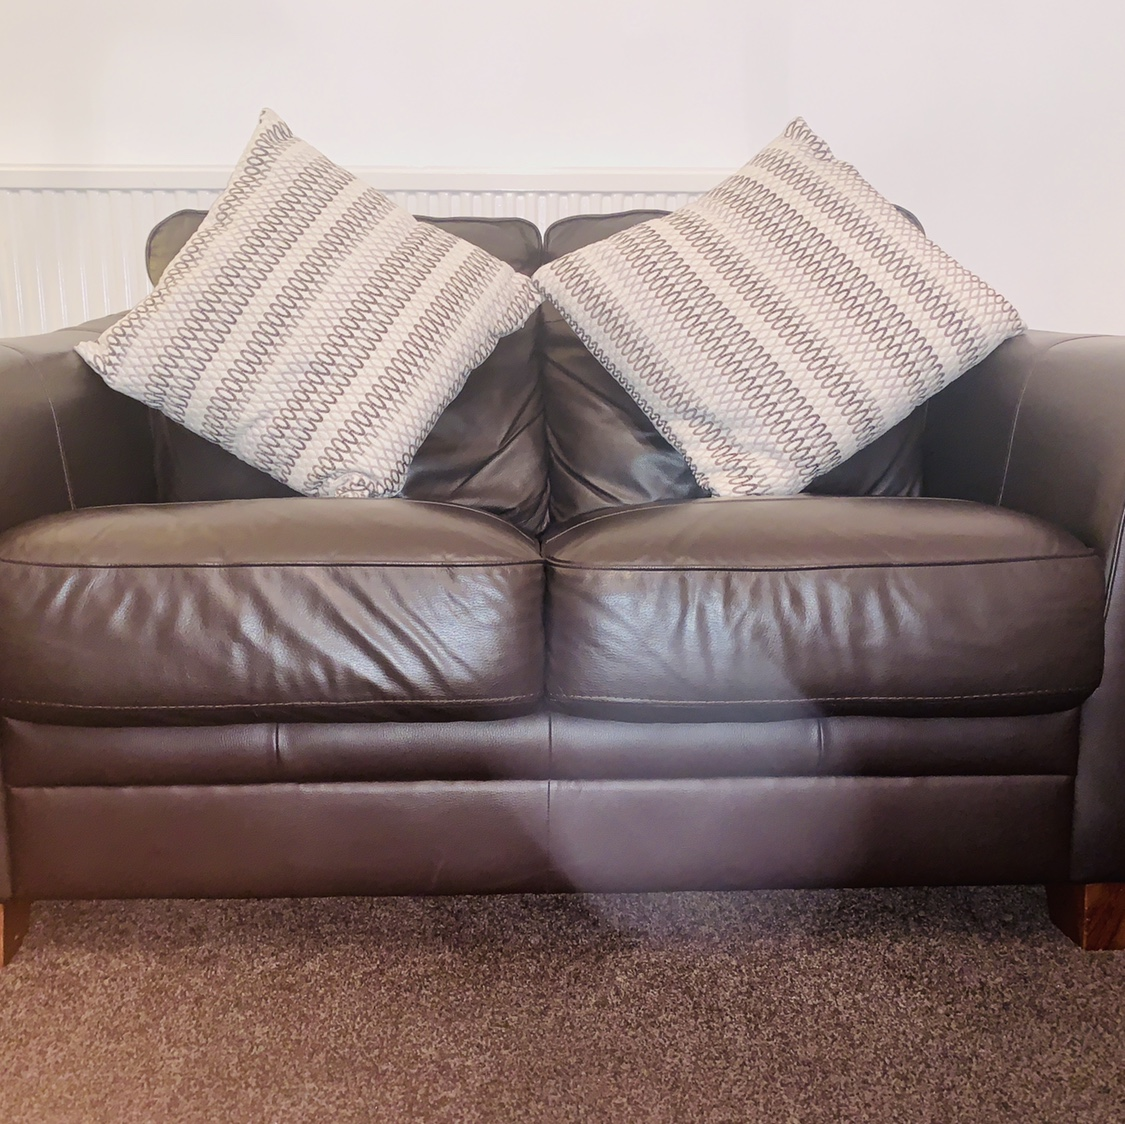 Outstanding Dark Brown Leather Sofa 2 Seater Used For 1 Year Depop Onthecornerstone Fun Painted Chair Ideas Images Onthecornerstoneorg